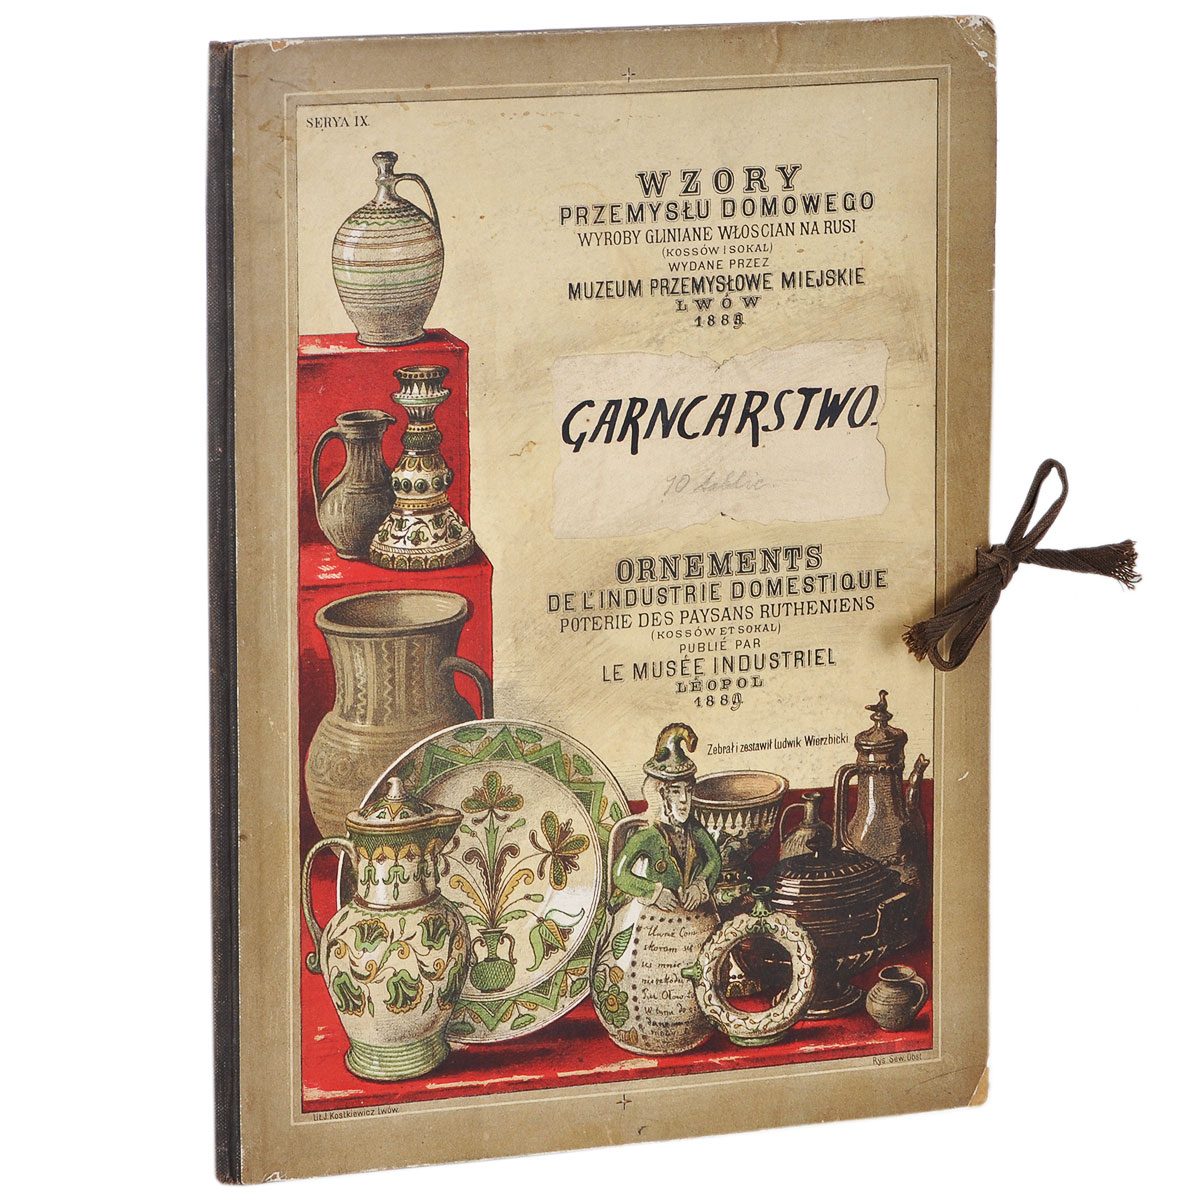 Wzory przemyslu domowego: Garncarstwo: Ornaments de L'Industrie Domestique american resin camera radio model creative decorative ornaments